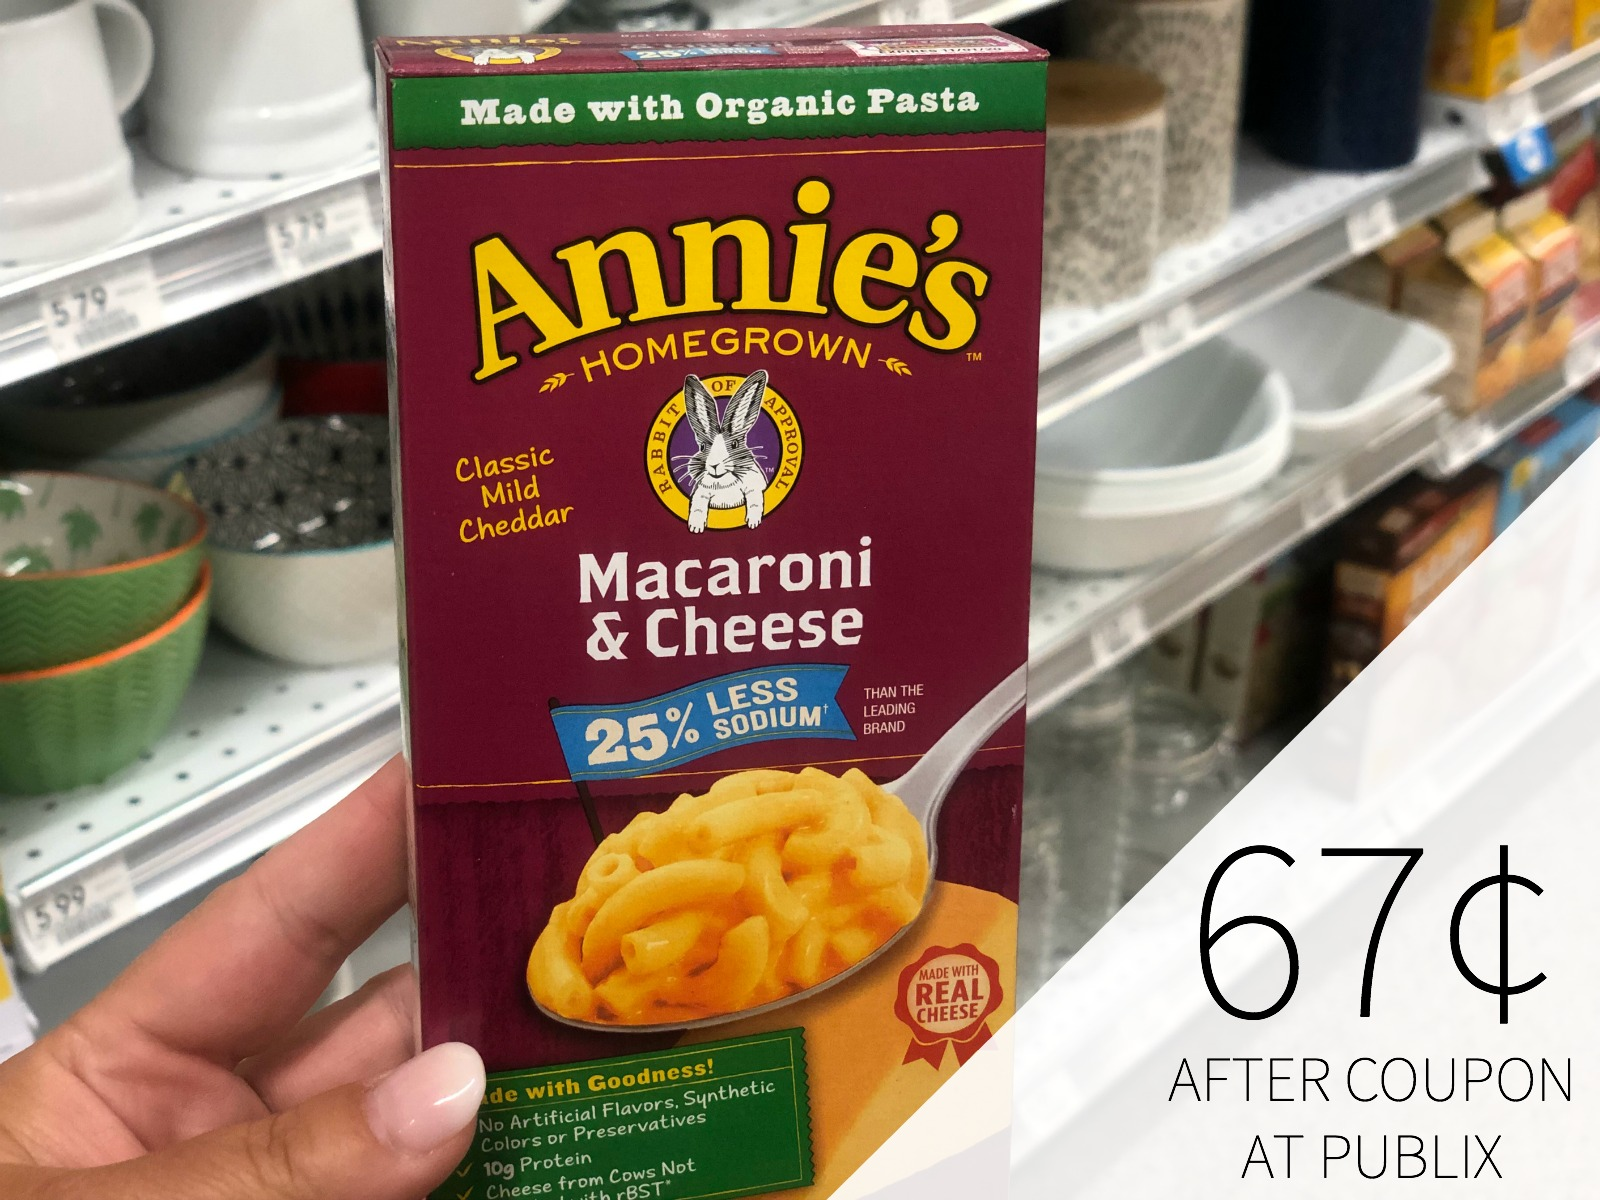 Annie's Homegrown Macaroni & Cheese As Low As 67¢ At Publix on I Heart Publix